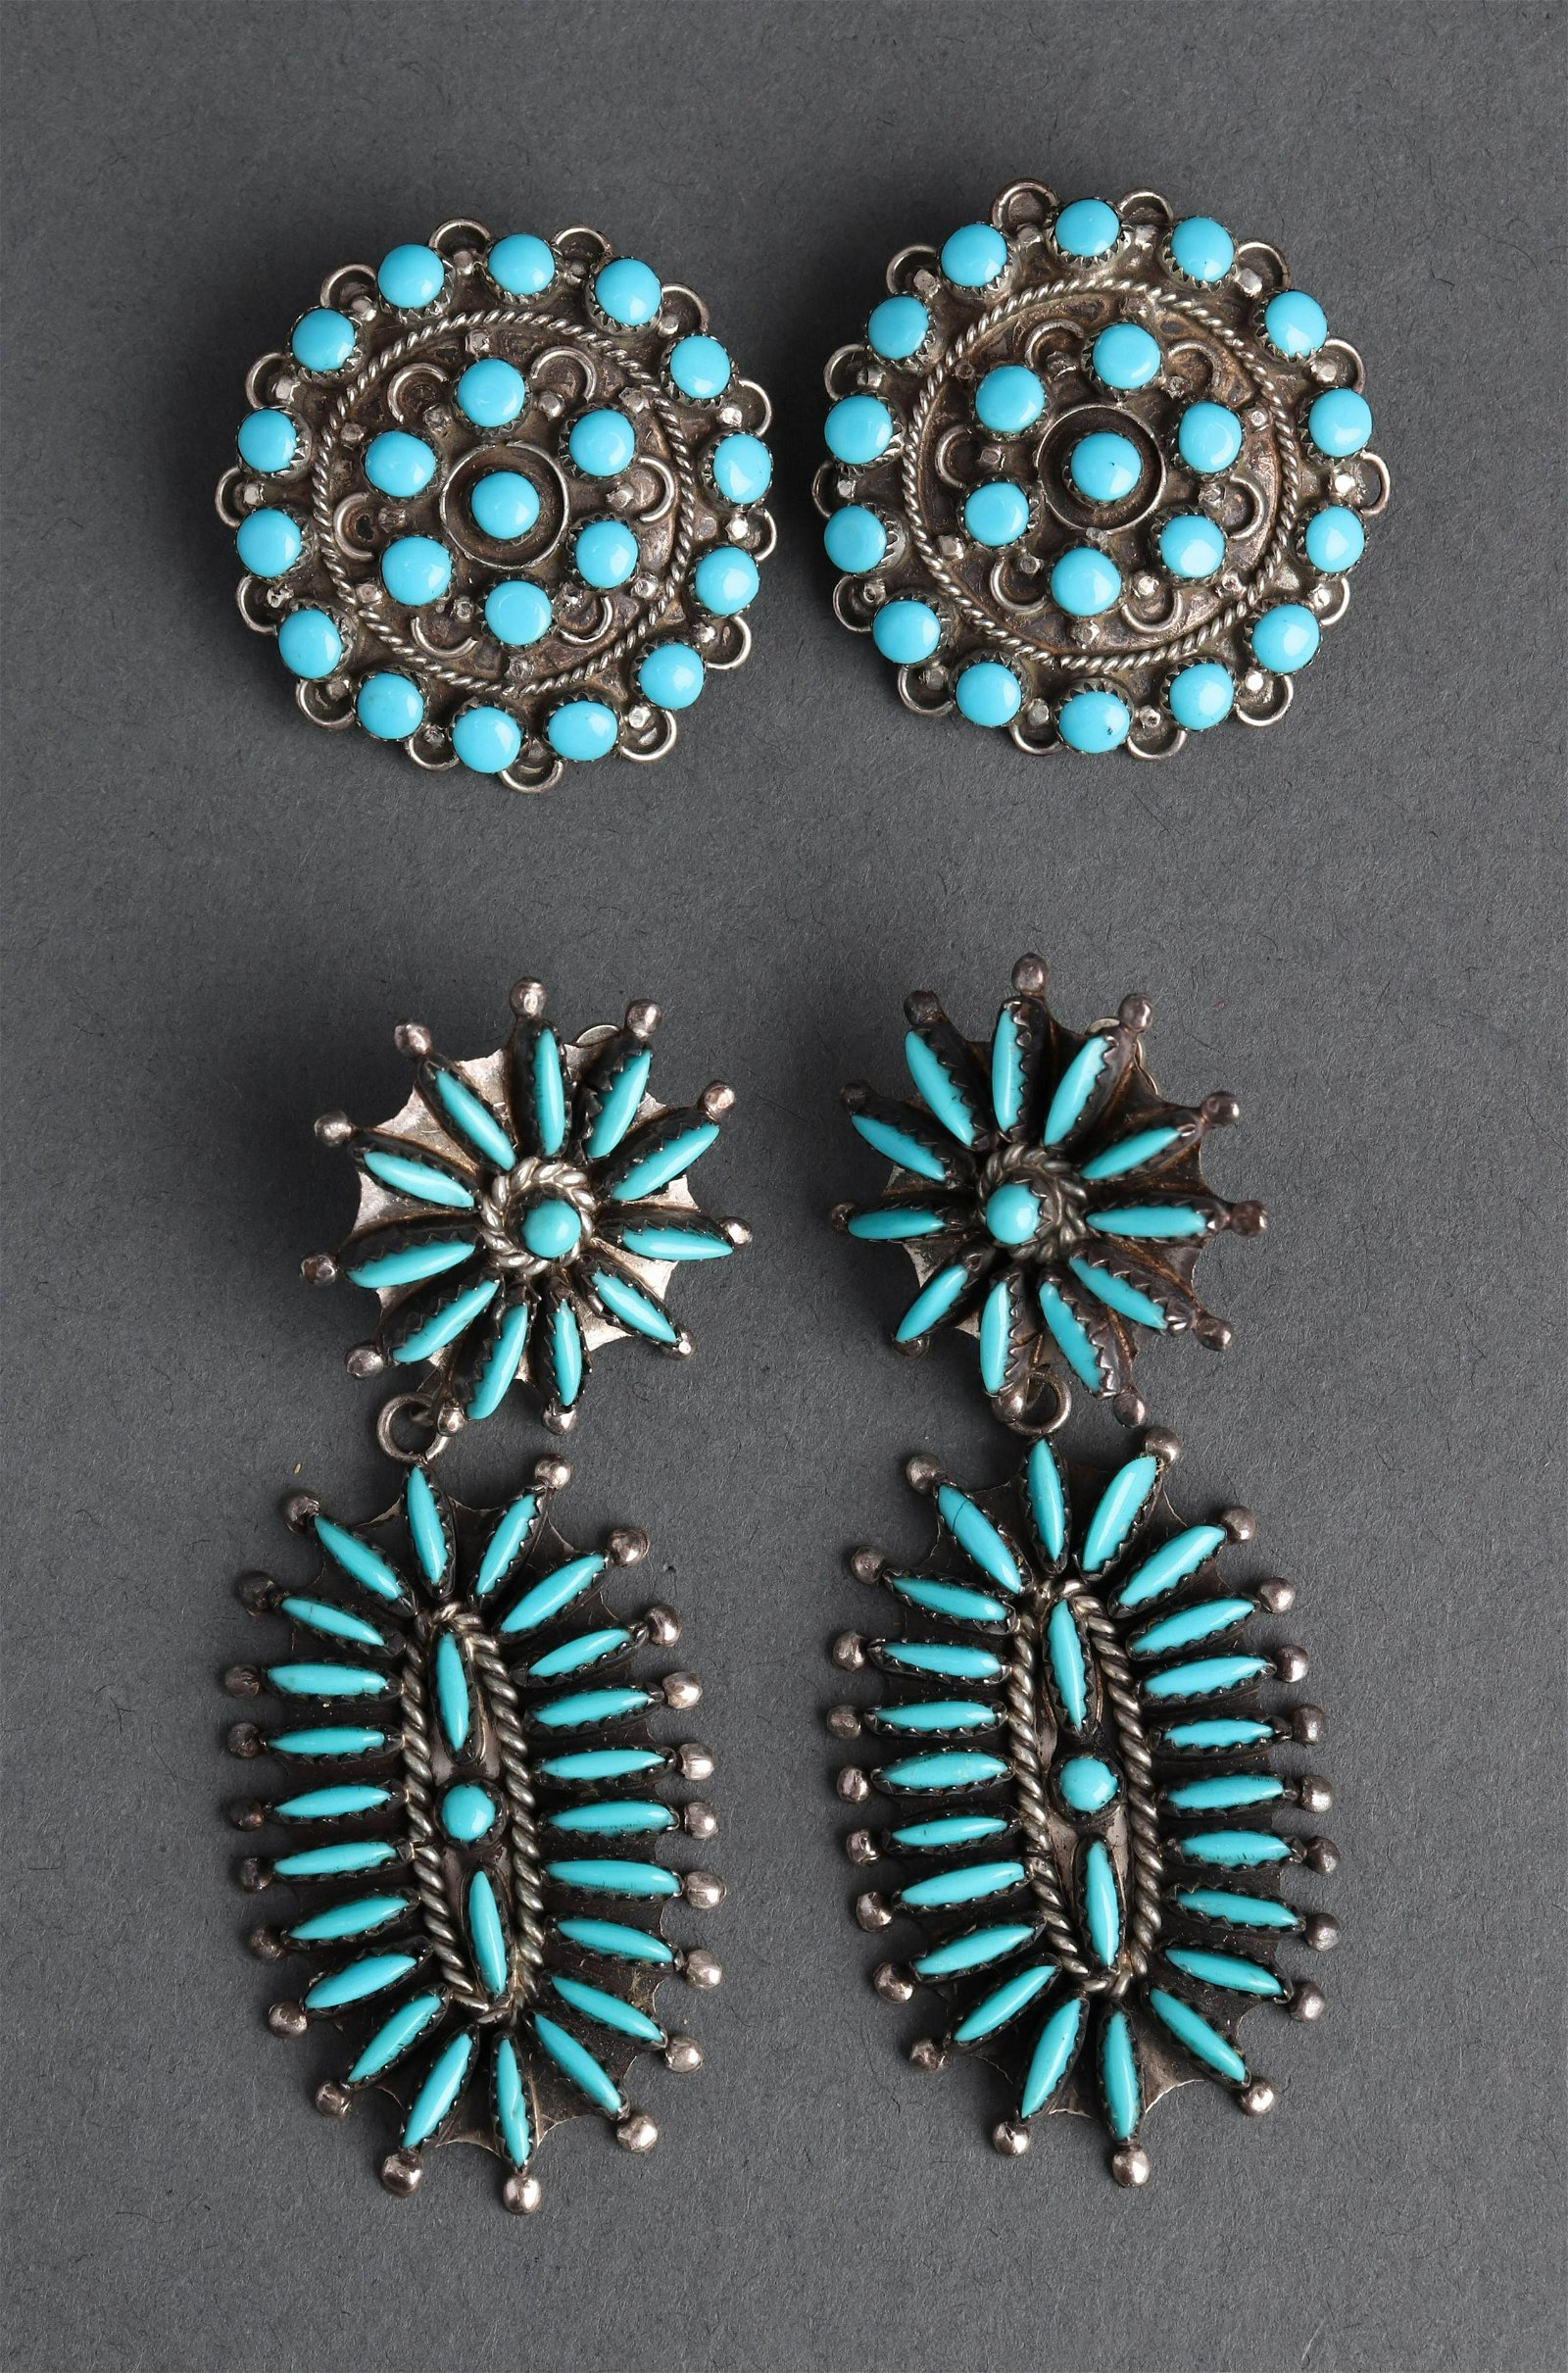 Group of Navajo Silver Turquoise Earrings 2 Pr